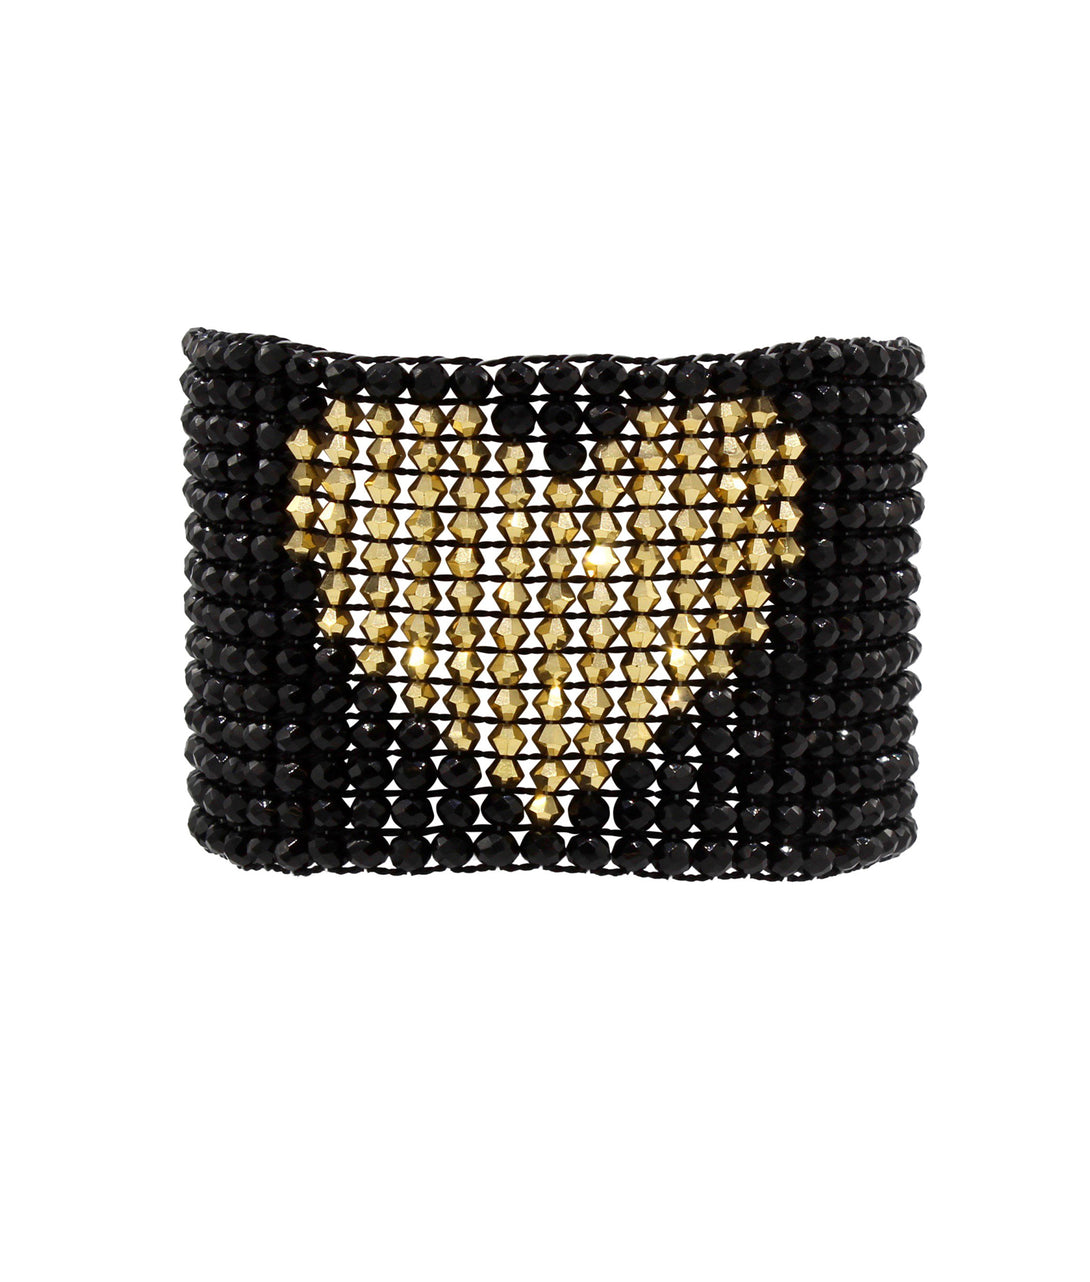 Cuore Cuff With Magnetic Closure in gold dust